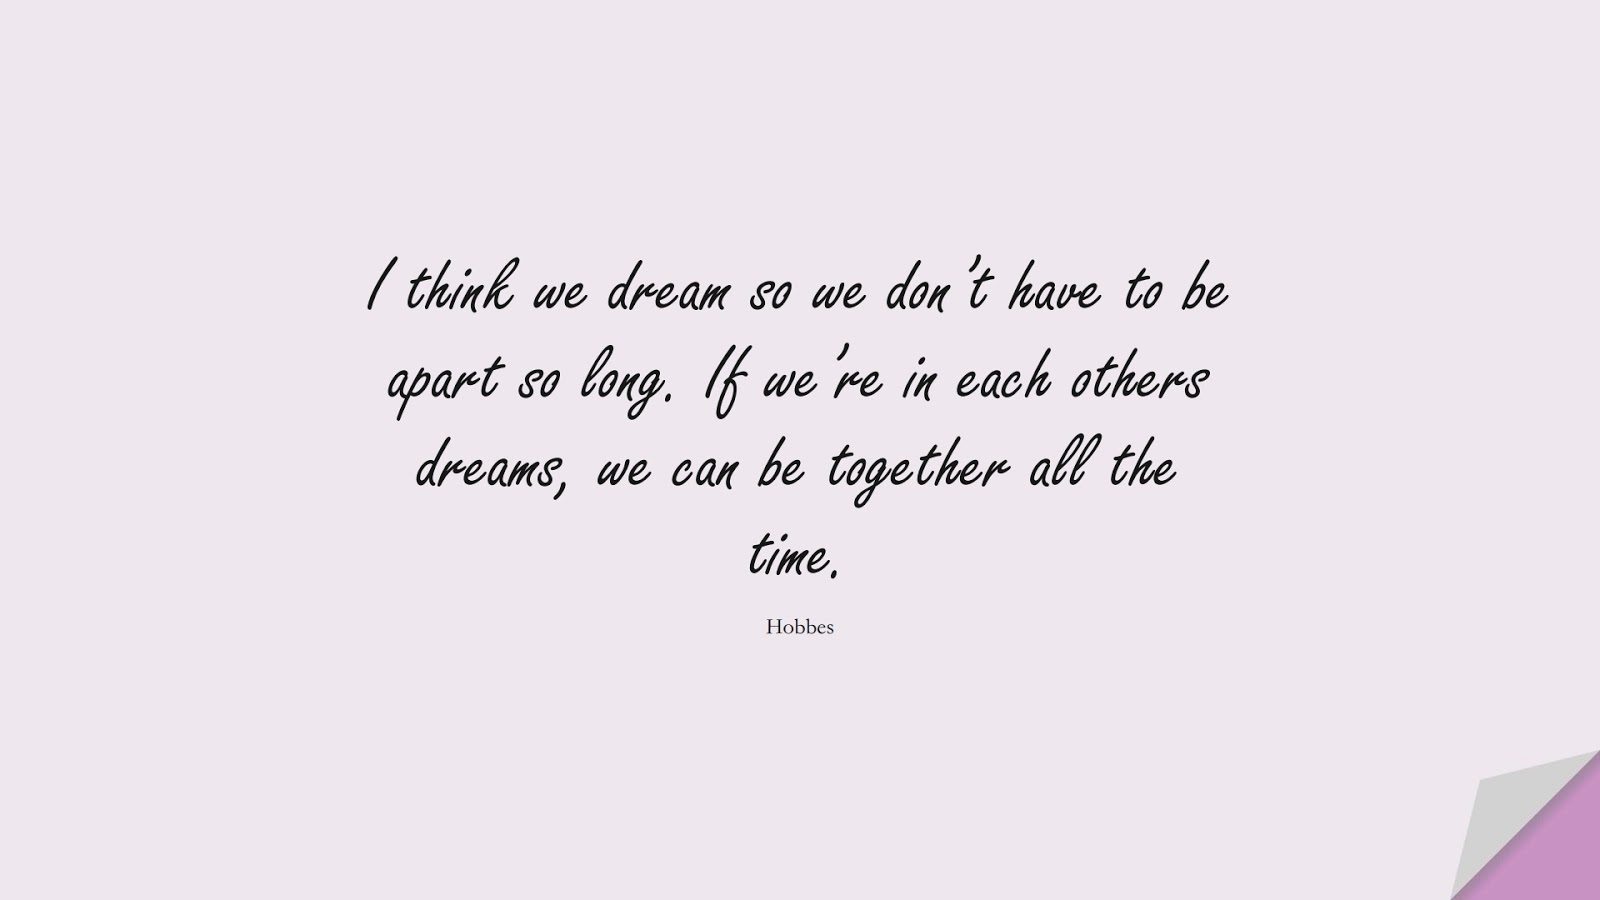 I think we dream so we don't have to be apart so long. If we're in each others dreams, we can be together all the time. (Hobbes);  #LoveQuotes